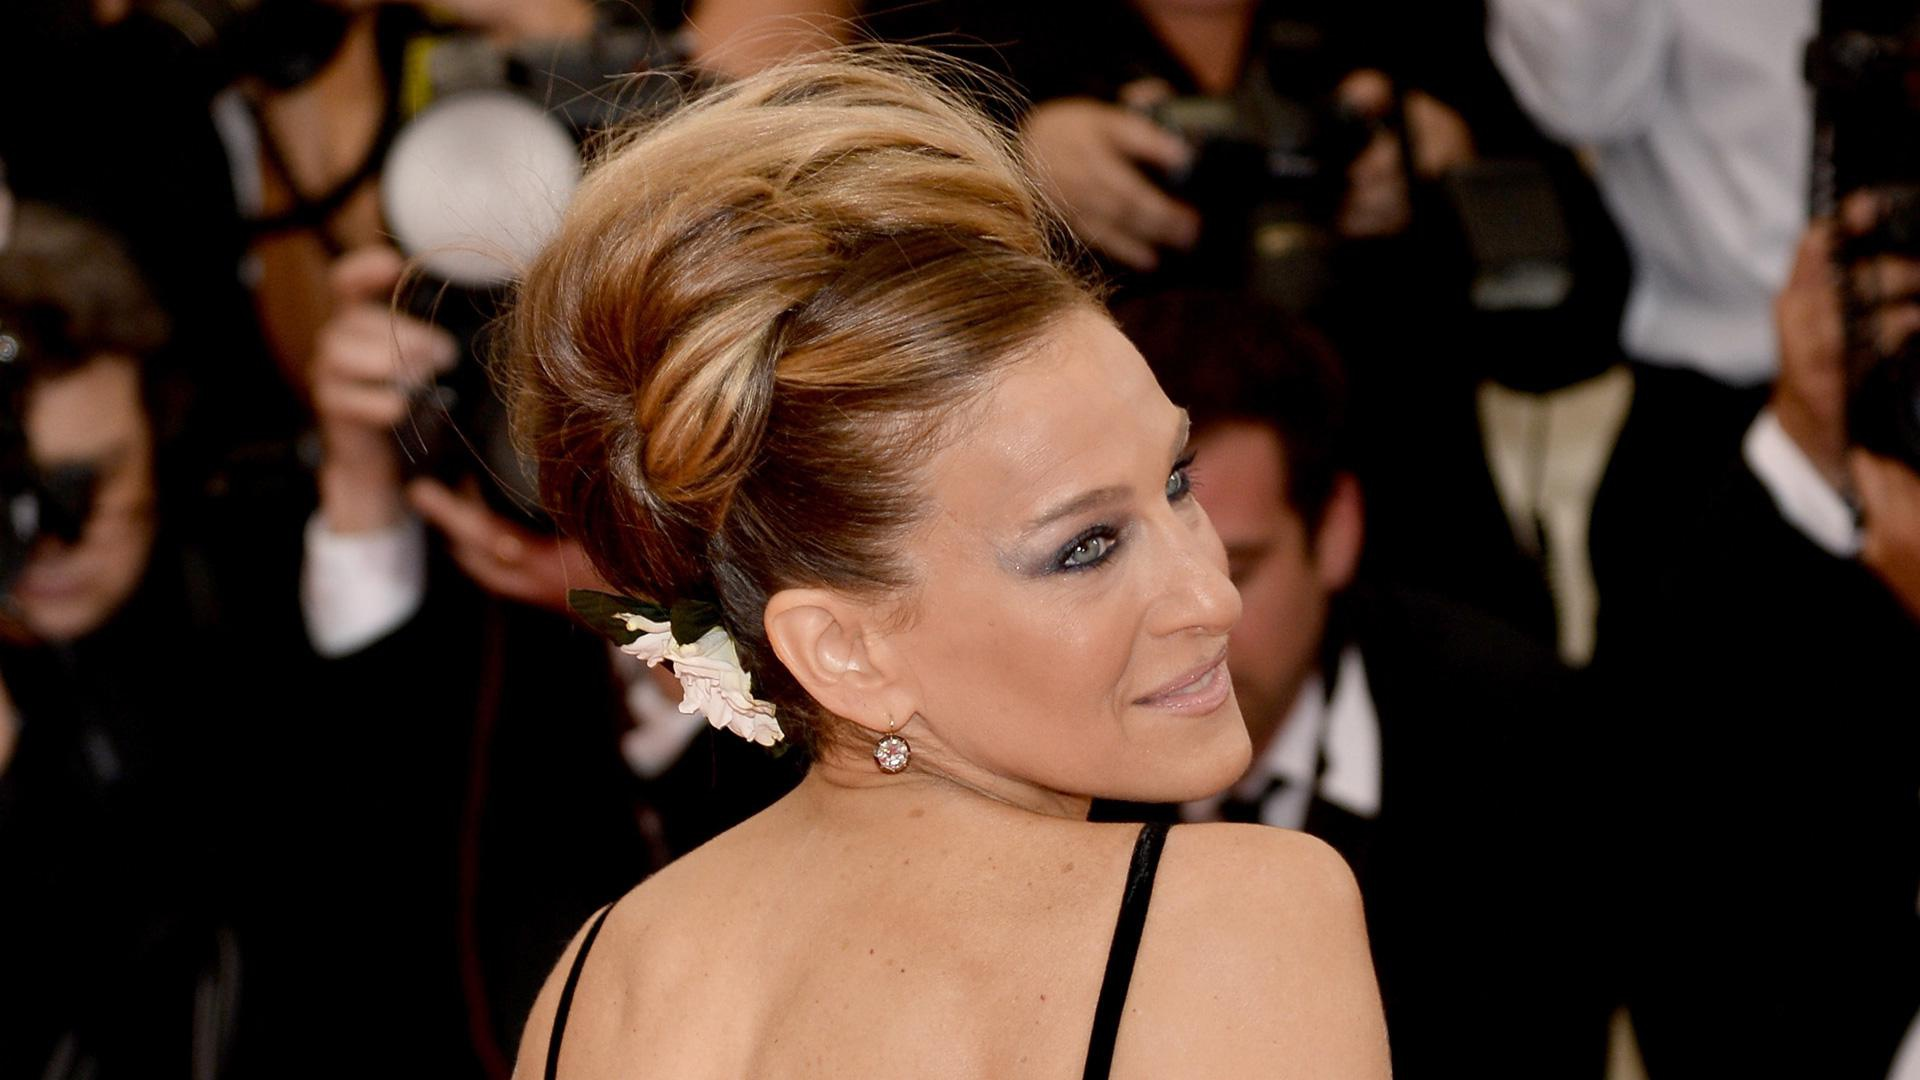 Sarah Jessica Parker's Met Gala hairstyle is on a whole other level